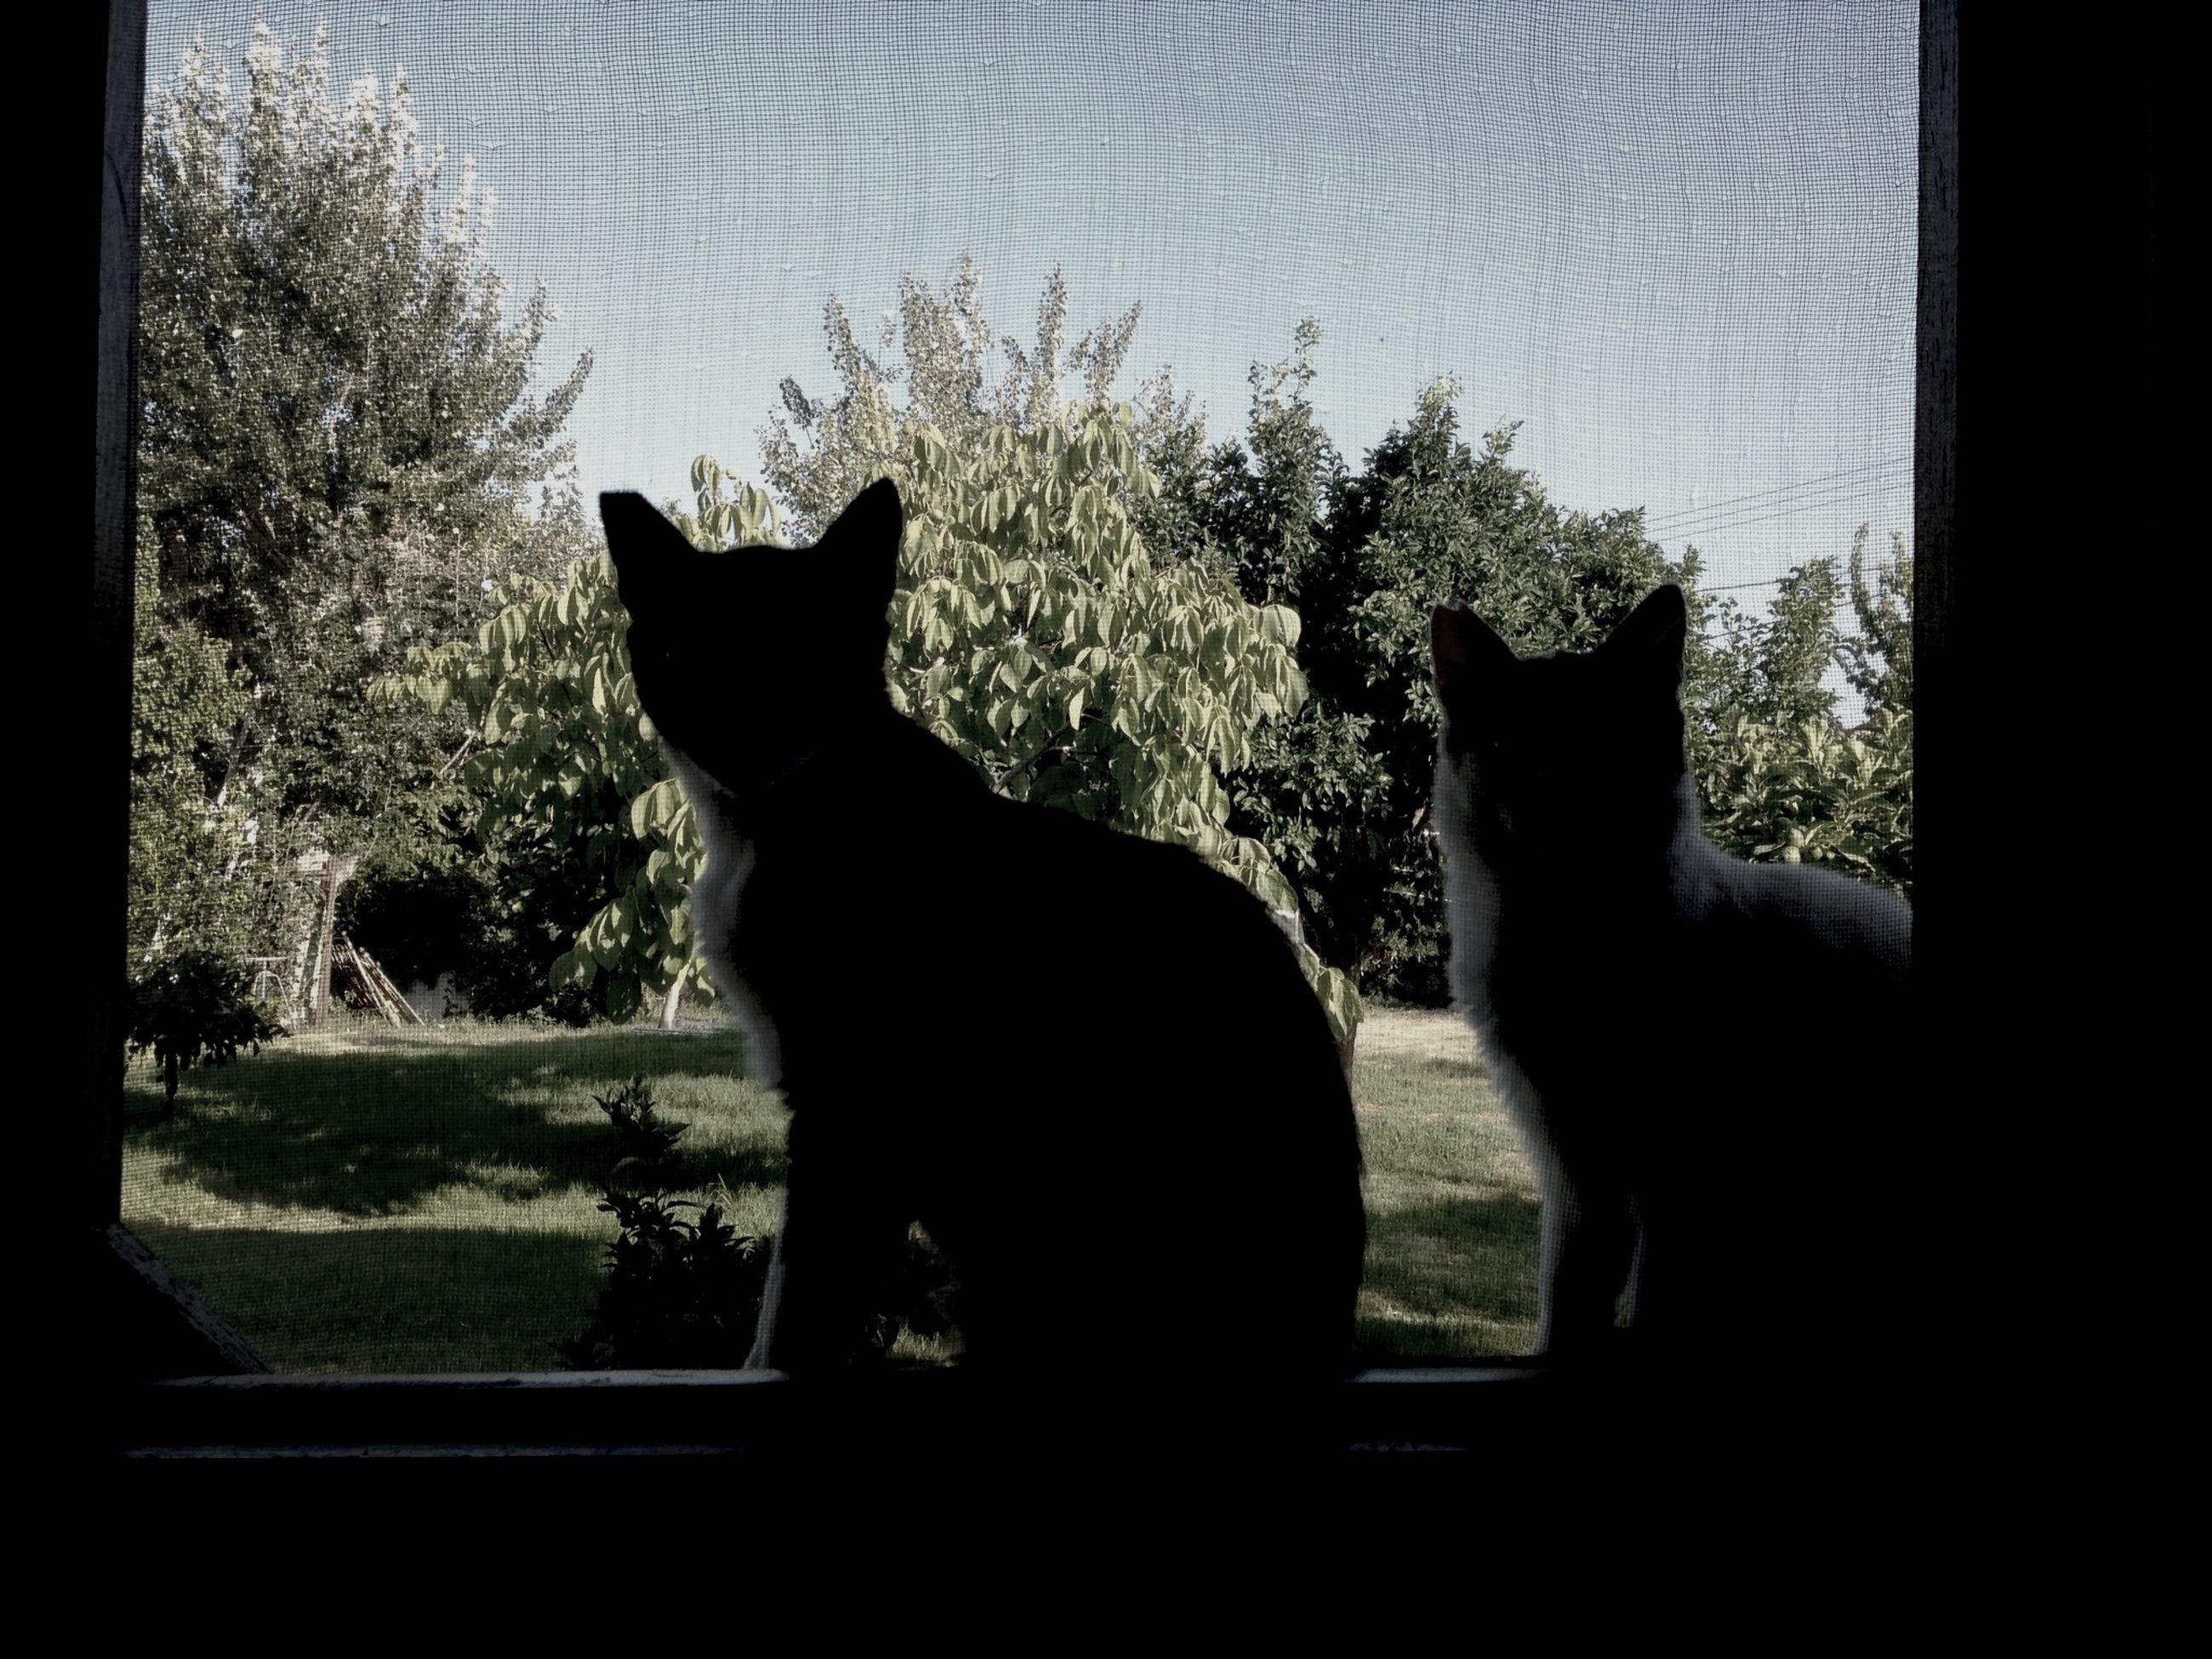 pets, domestic animals, animal themes, mammal, domestic cat, one animal, cat, feline, window, sitting, black color, looking through window, indoors, glass - material, relaxation, window sill, whisker, animal, silhouette, zoology